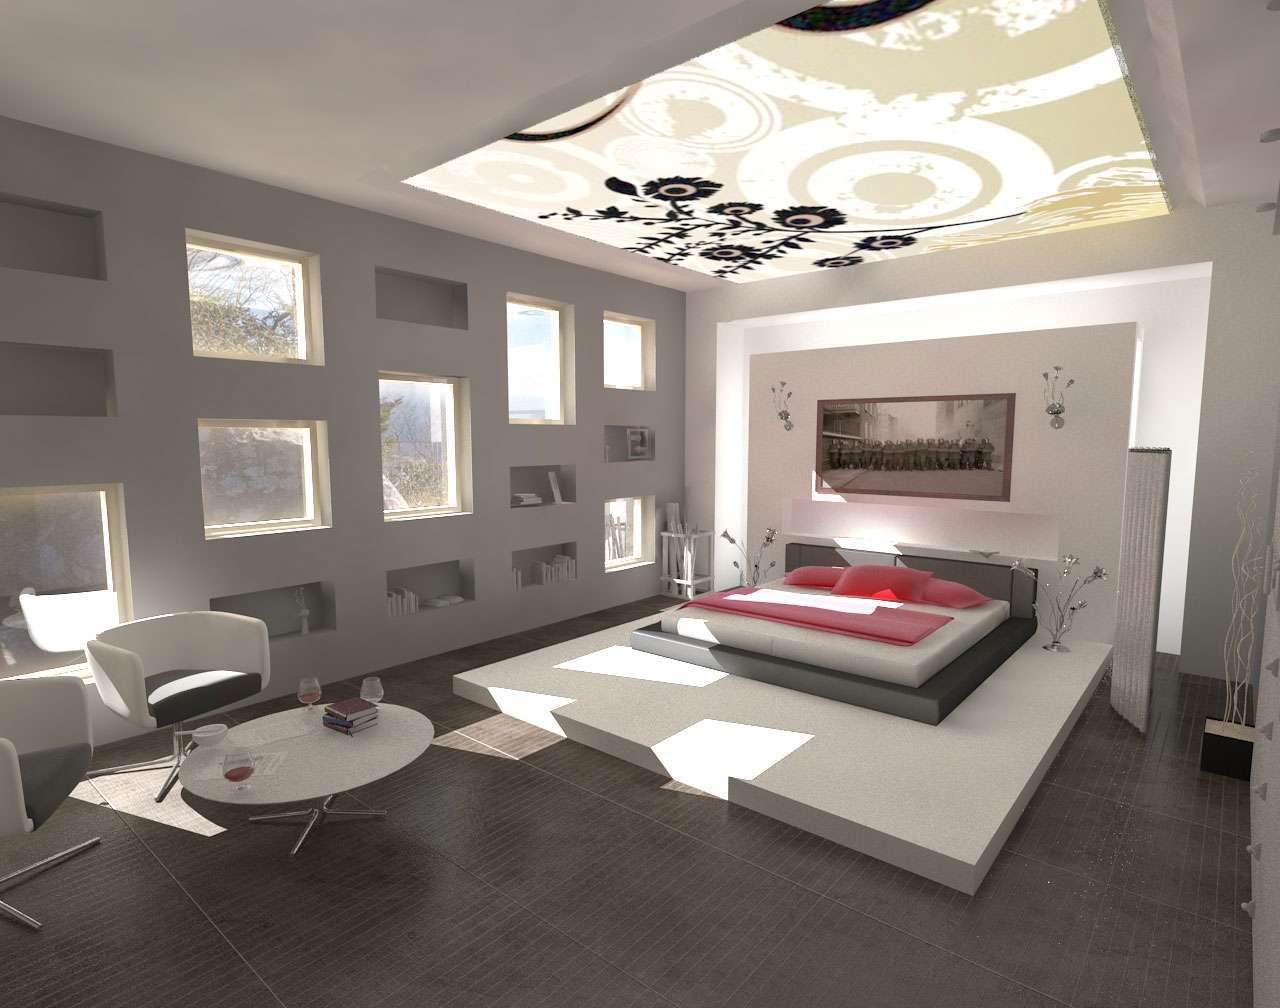 Inspirational Rooms Interior Design Decobizz